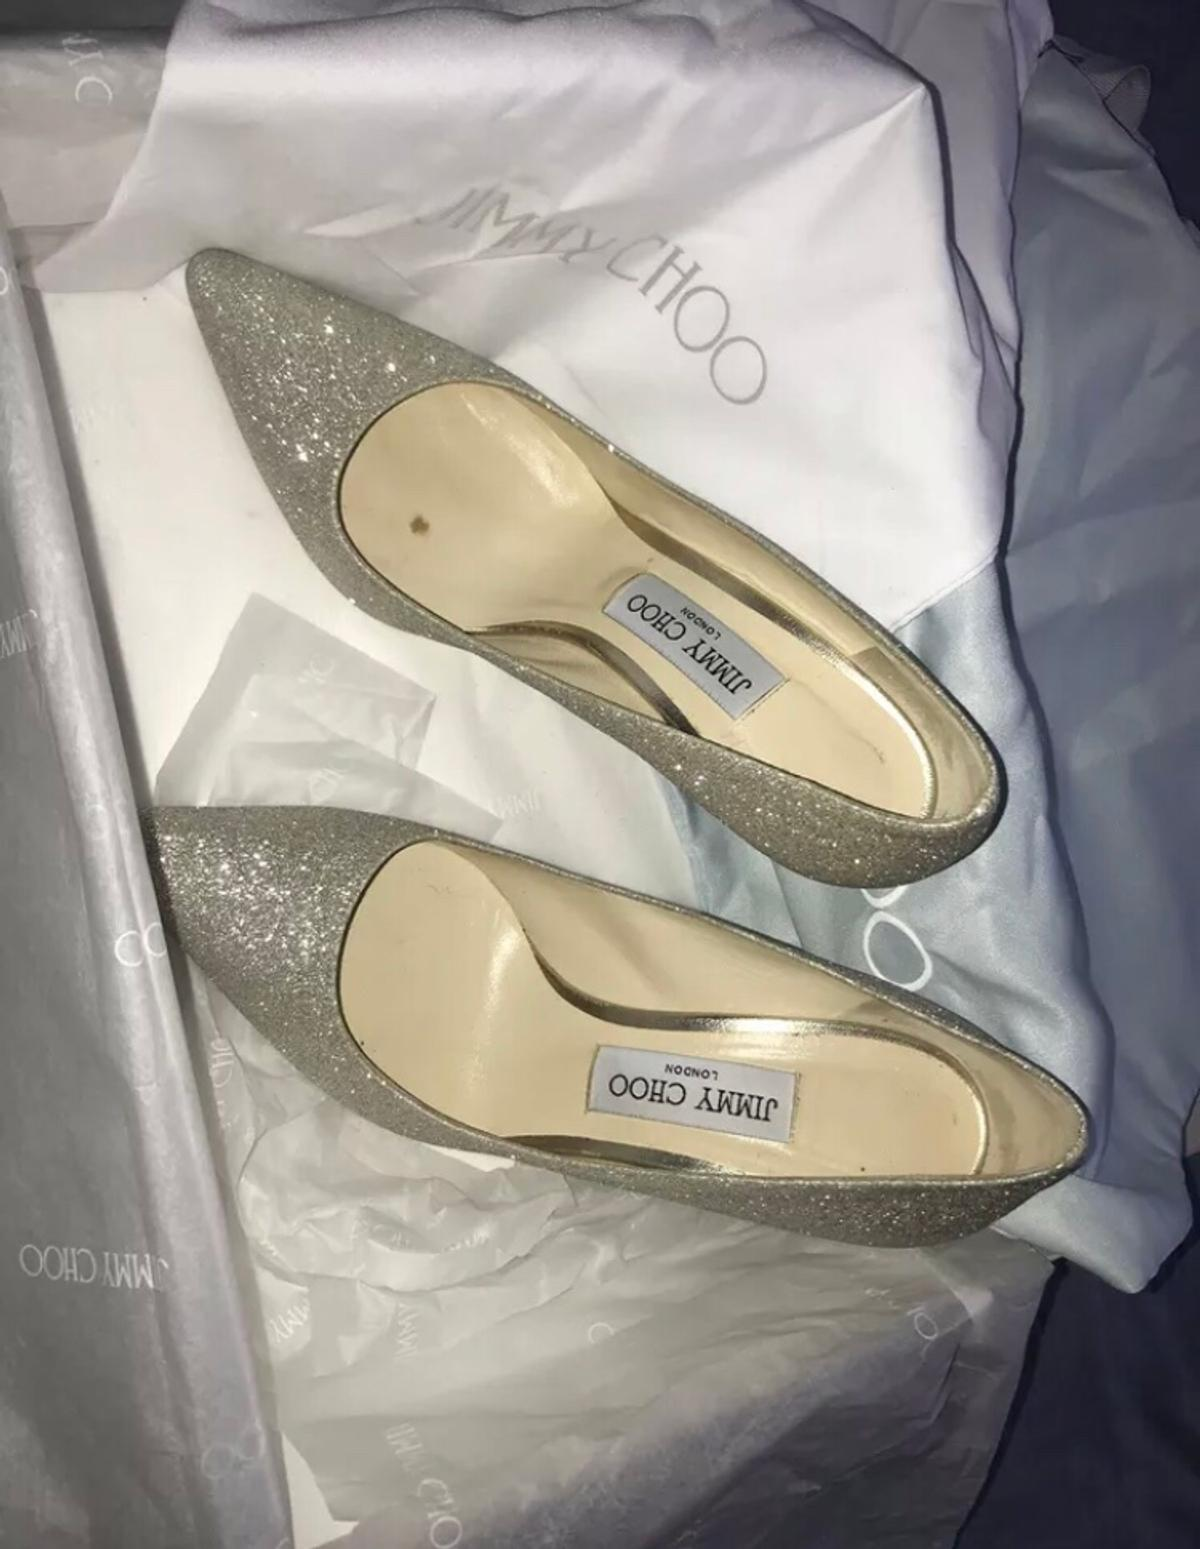 Authentic Jimmy Choo Shoes Romy 100 in HX1 Calderdale for